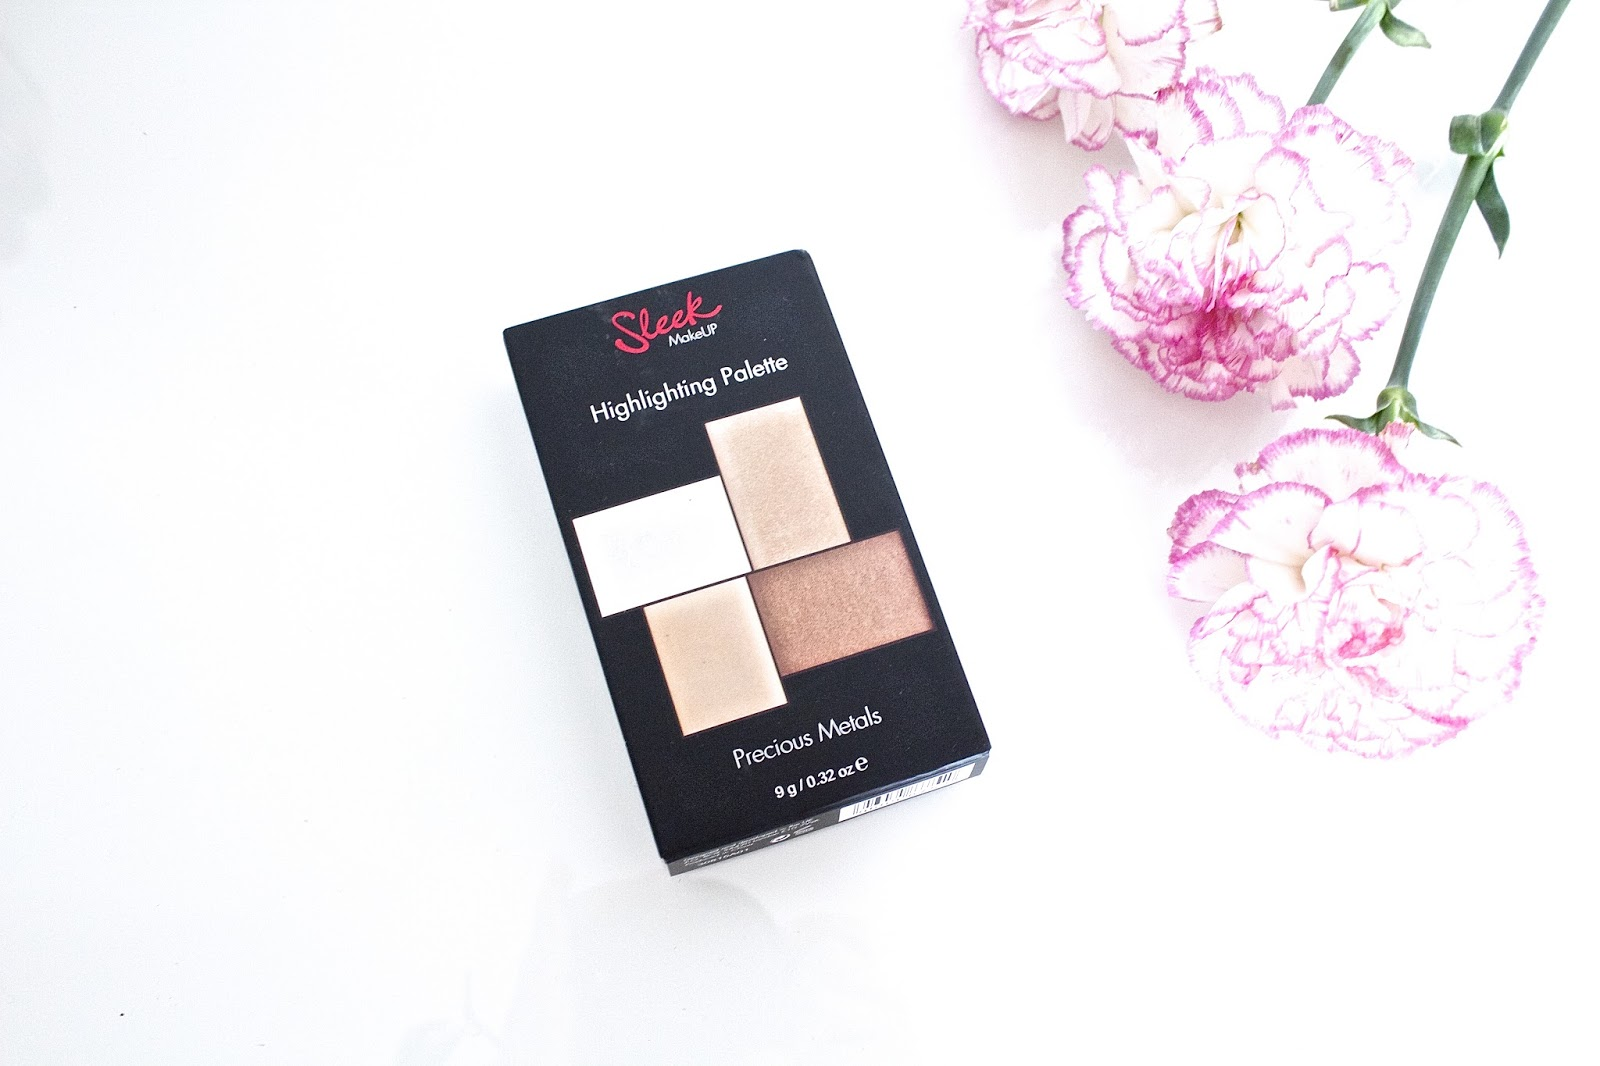 A review of Sleek Makeup Highlighting Palette Precious Metals